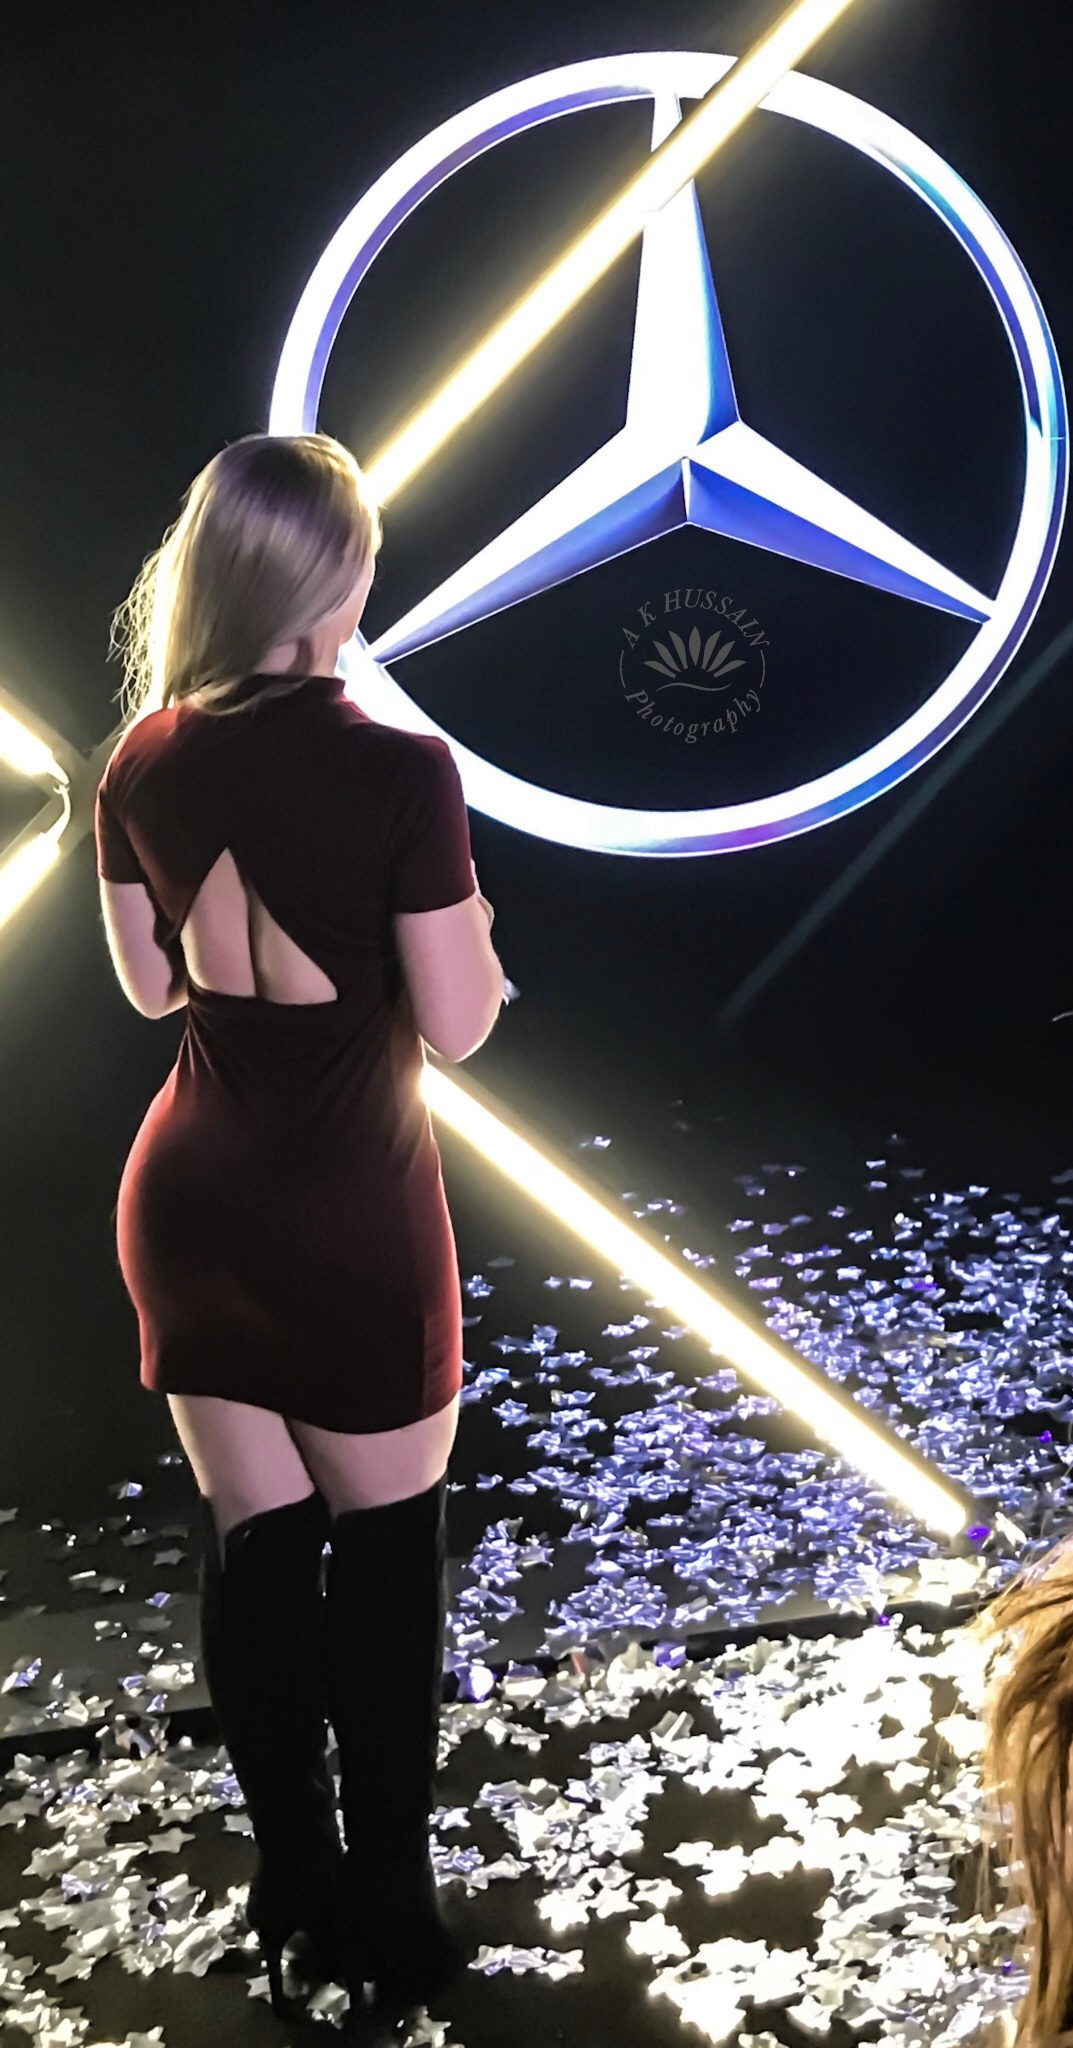 Attendees striking some poses with the illuminated Mercedes logo